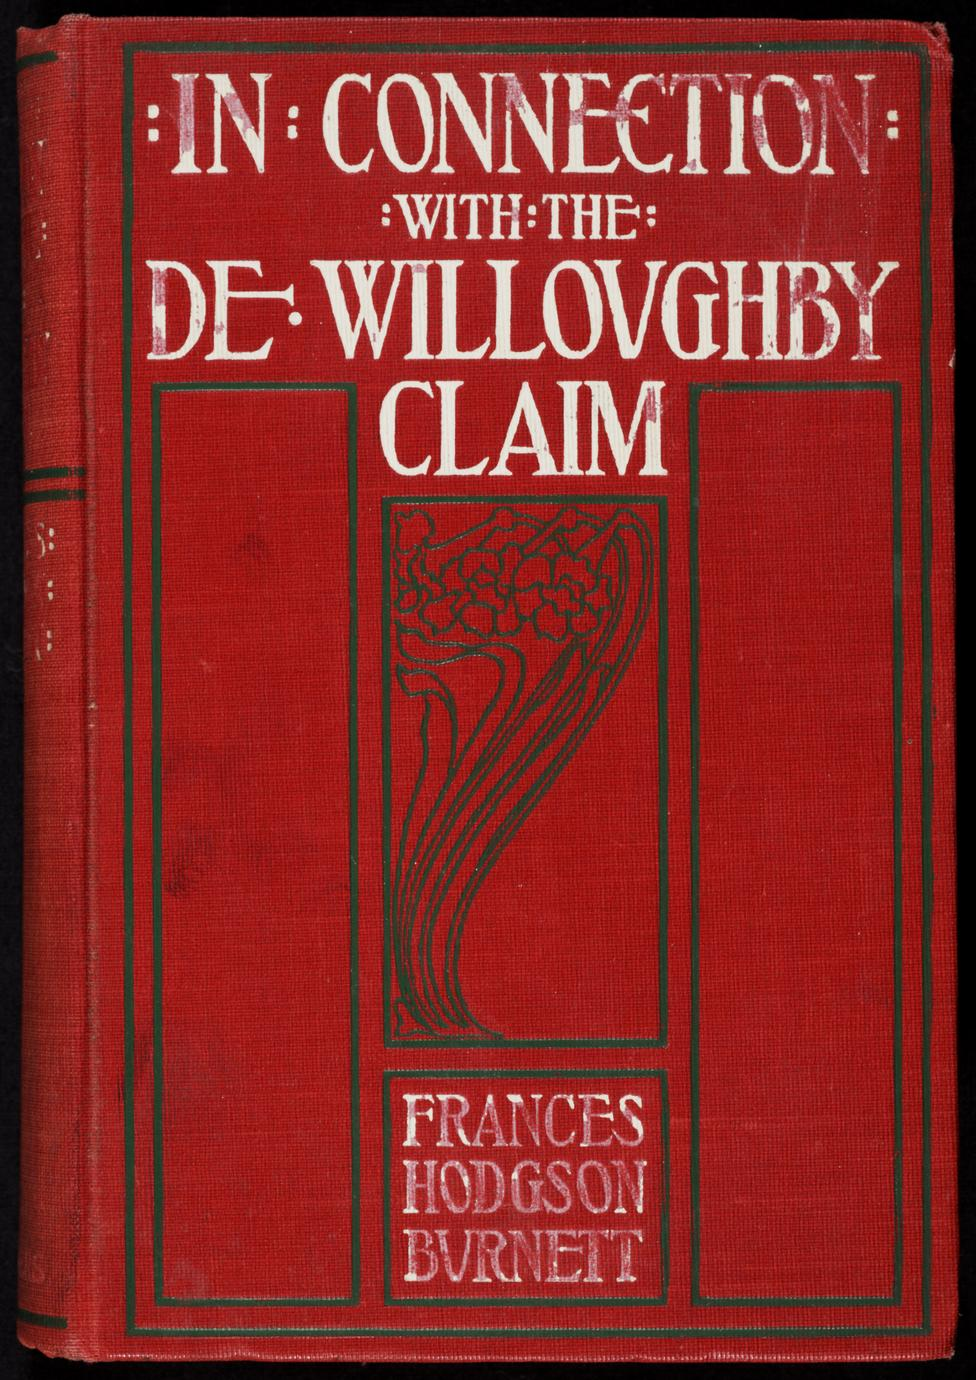 In connection with the De Willoughby claim (1 of 2)